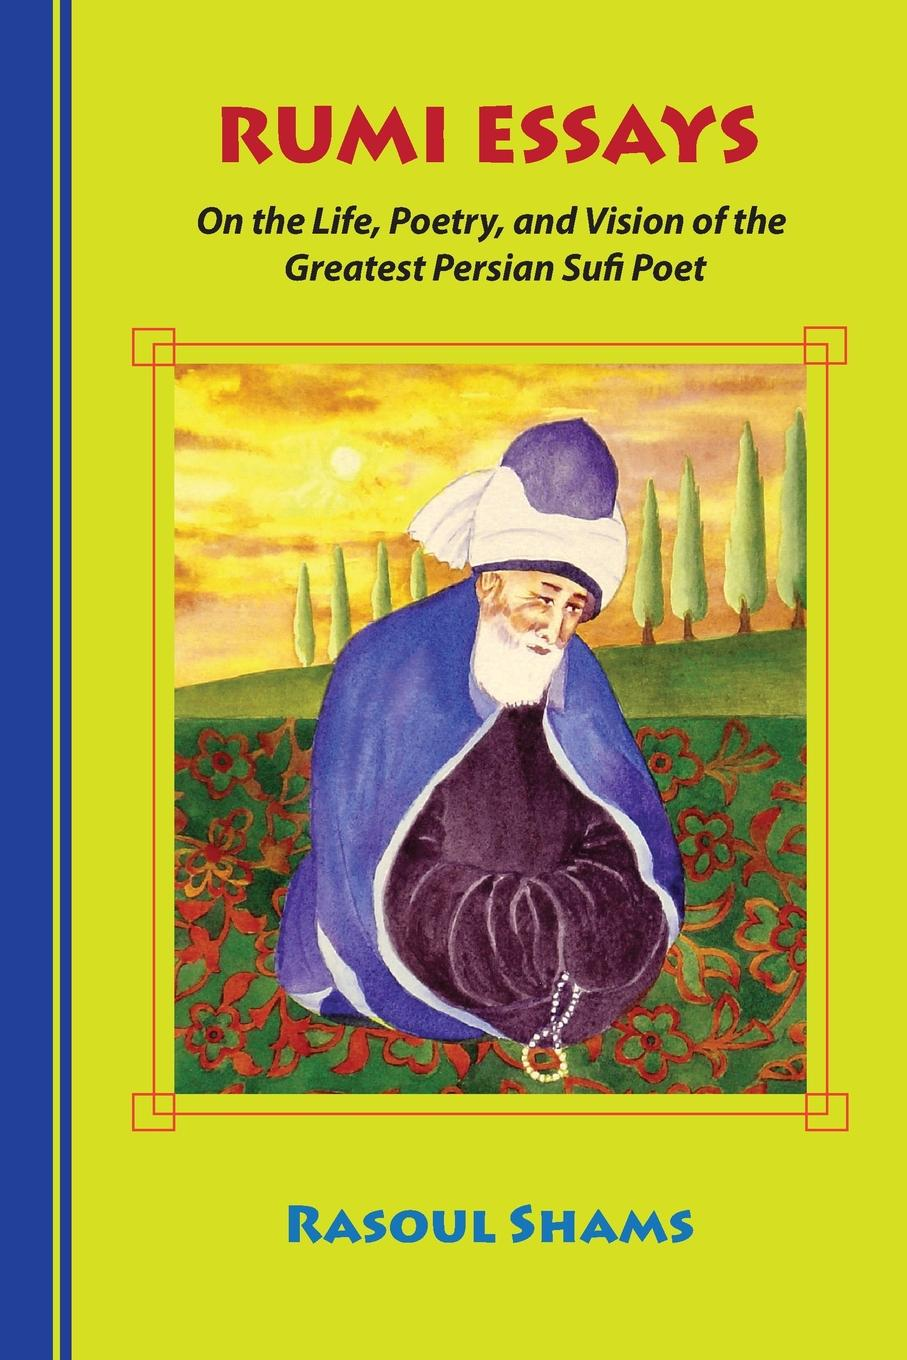 Rasoul Shams Rumi Essays. On the Life, Poetry, and Vision of the Greatest Persian Sufi Poet rumi poetry club rumi poetry club sand and sky poems from utah